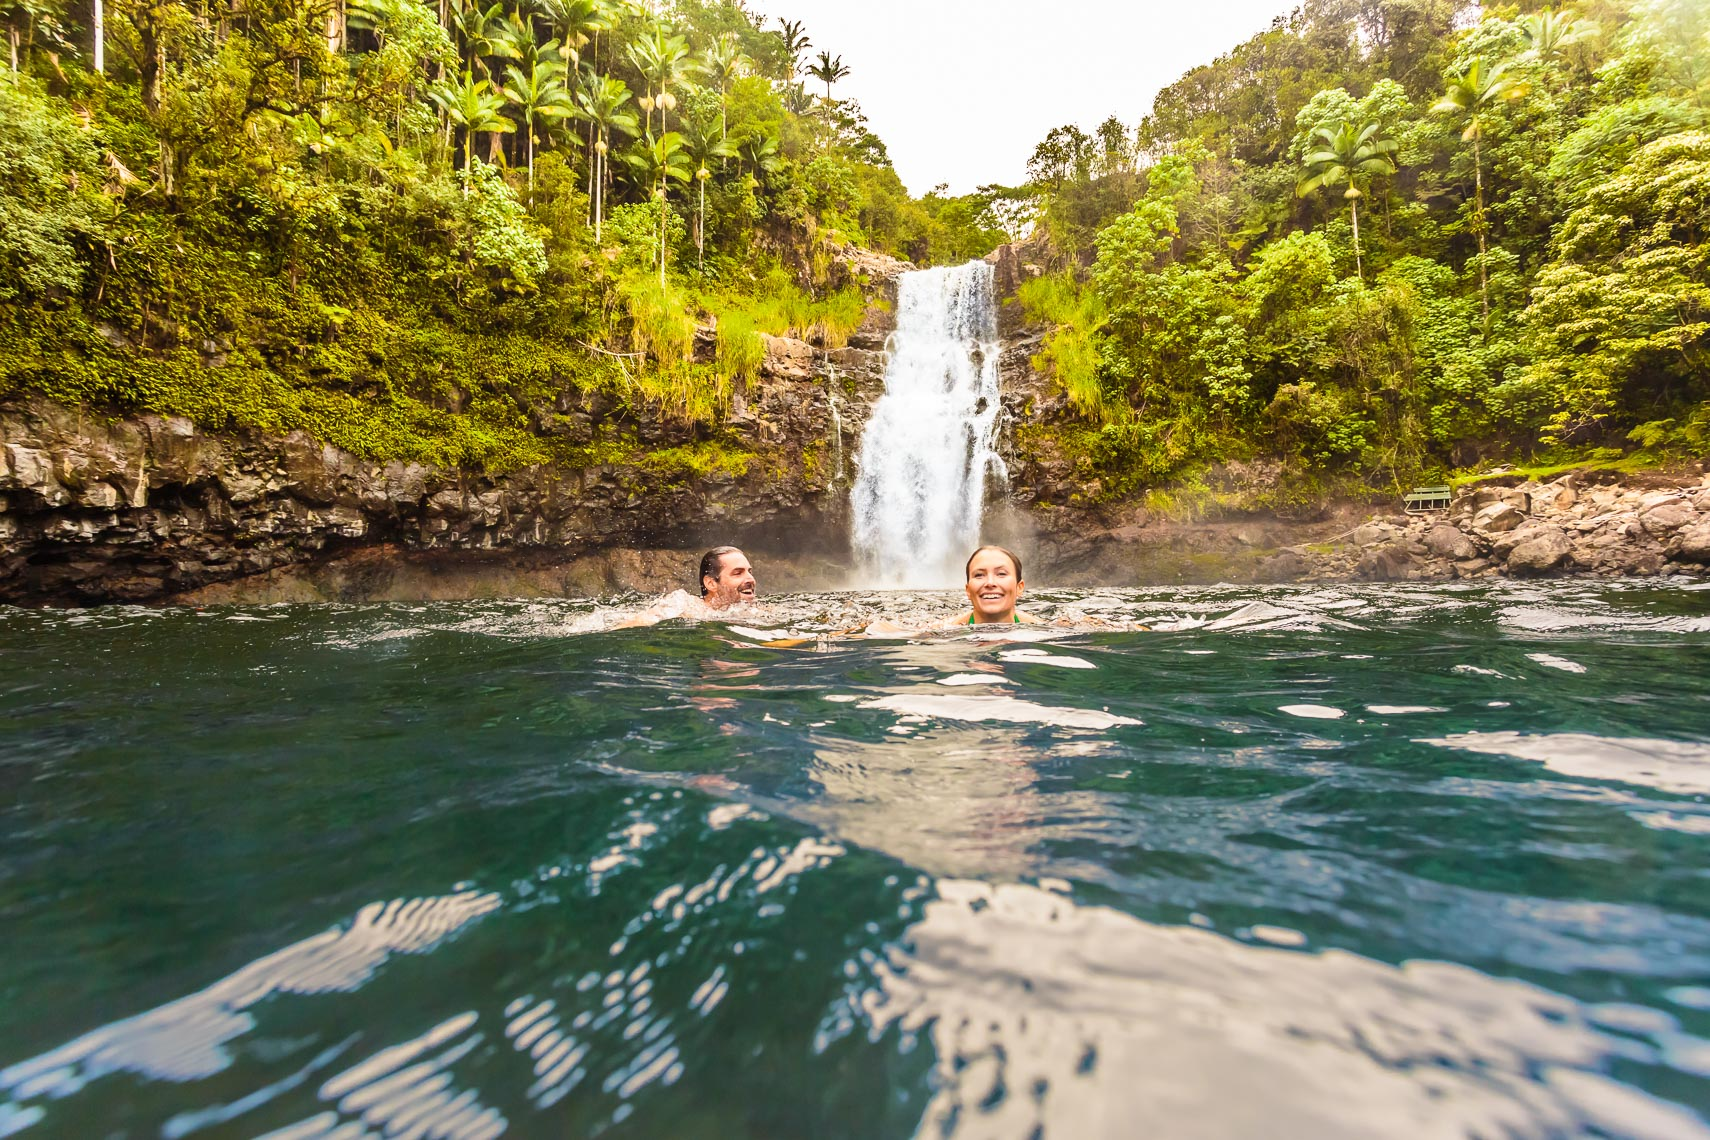 Norwegian Cruise Line Hawaii Couple Waterfall Swim | Michael DeYoung